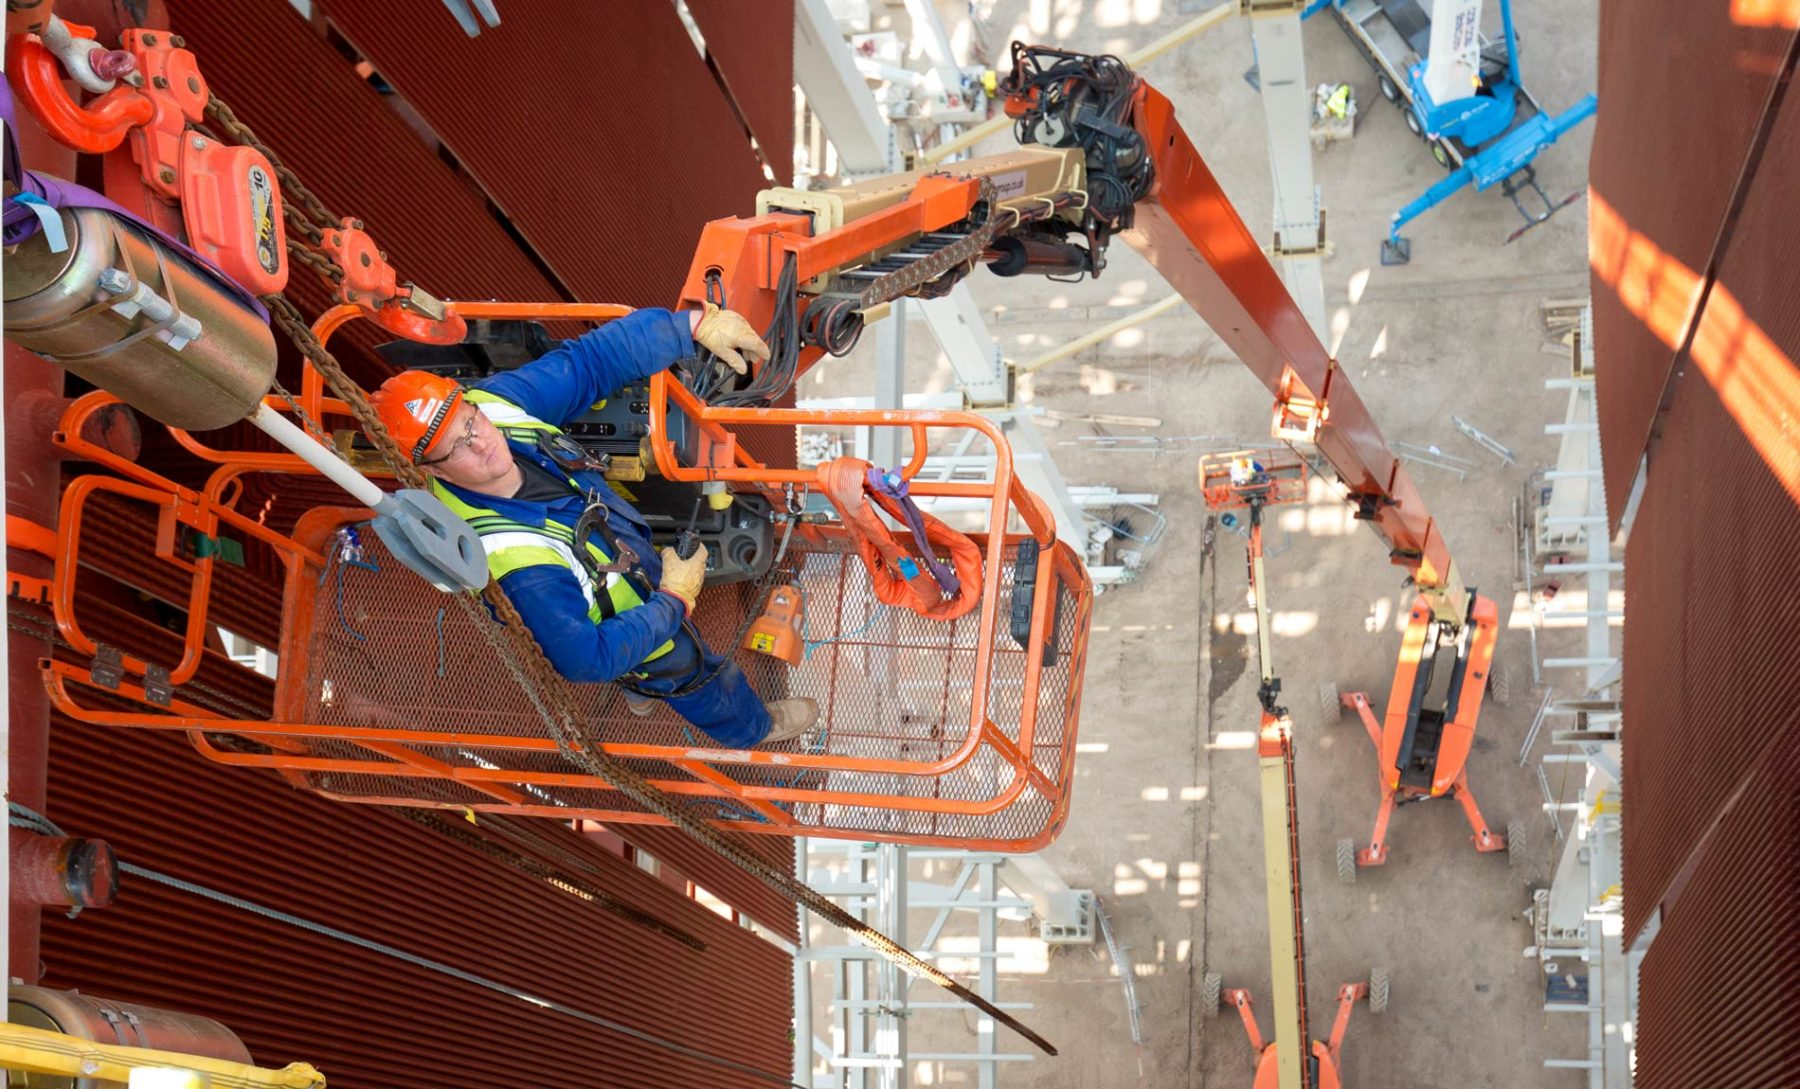 Looking down at man in orange lifting cage at great on construction site